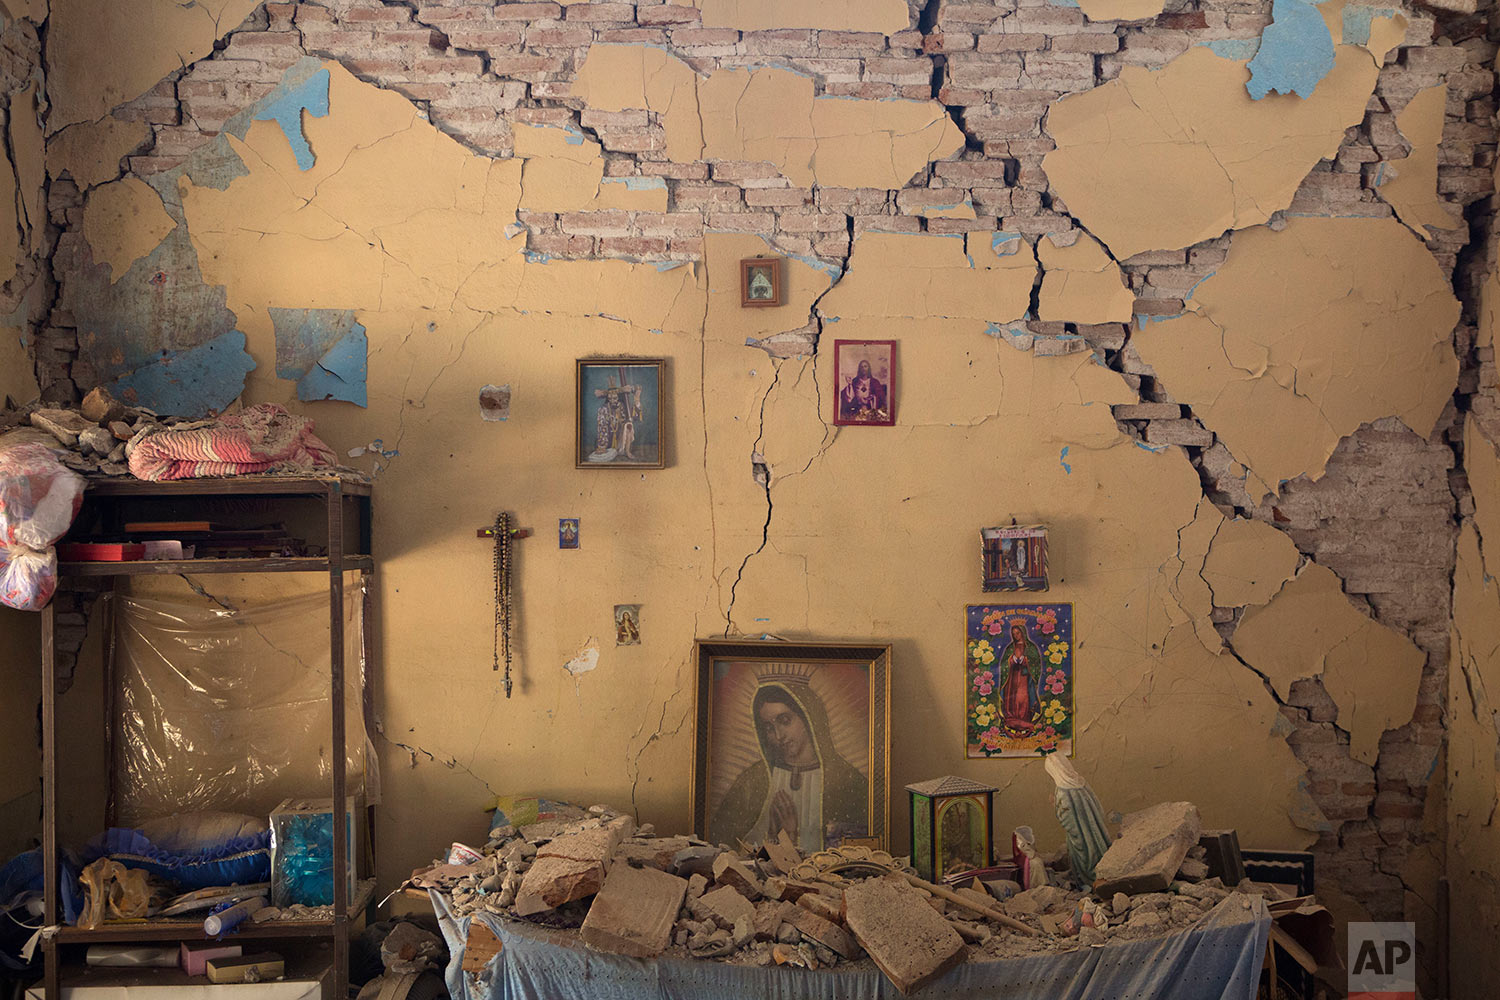 An altar to the Virgin of Guadalupe is covered with fallen debris inside the earth-damaged home where Larissa Garcia, 24, lived with her family in Juchitan, Oaxaca state, Mexico, Saturday, Sept. 9, 2017. The family was caught under rubble when the house partially collapsed, leaving Garcia with a broken arm and her father with a head injury. Her mother, who had to be pulled out from underneath a foot-thick section of wall which collapsed on her back, remained in a wheelchair and unable to walk. (AP Photo/Rebecca Blackwell)